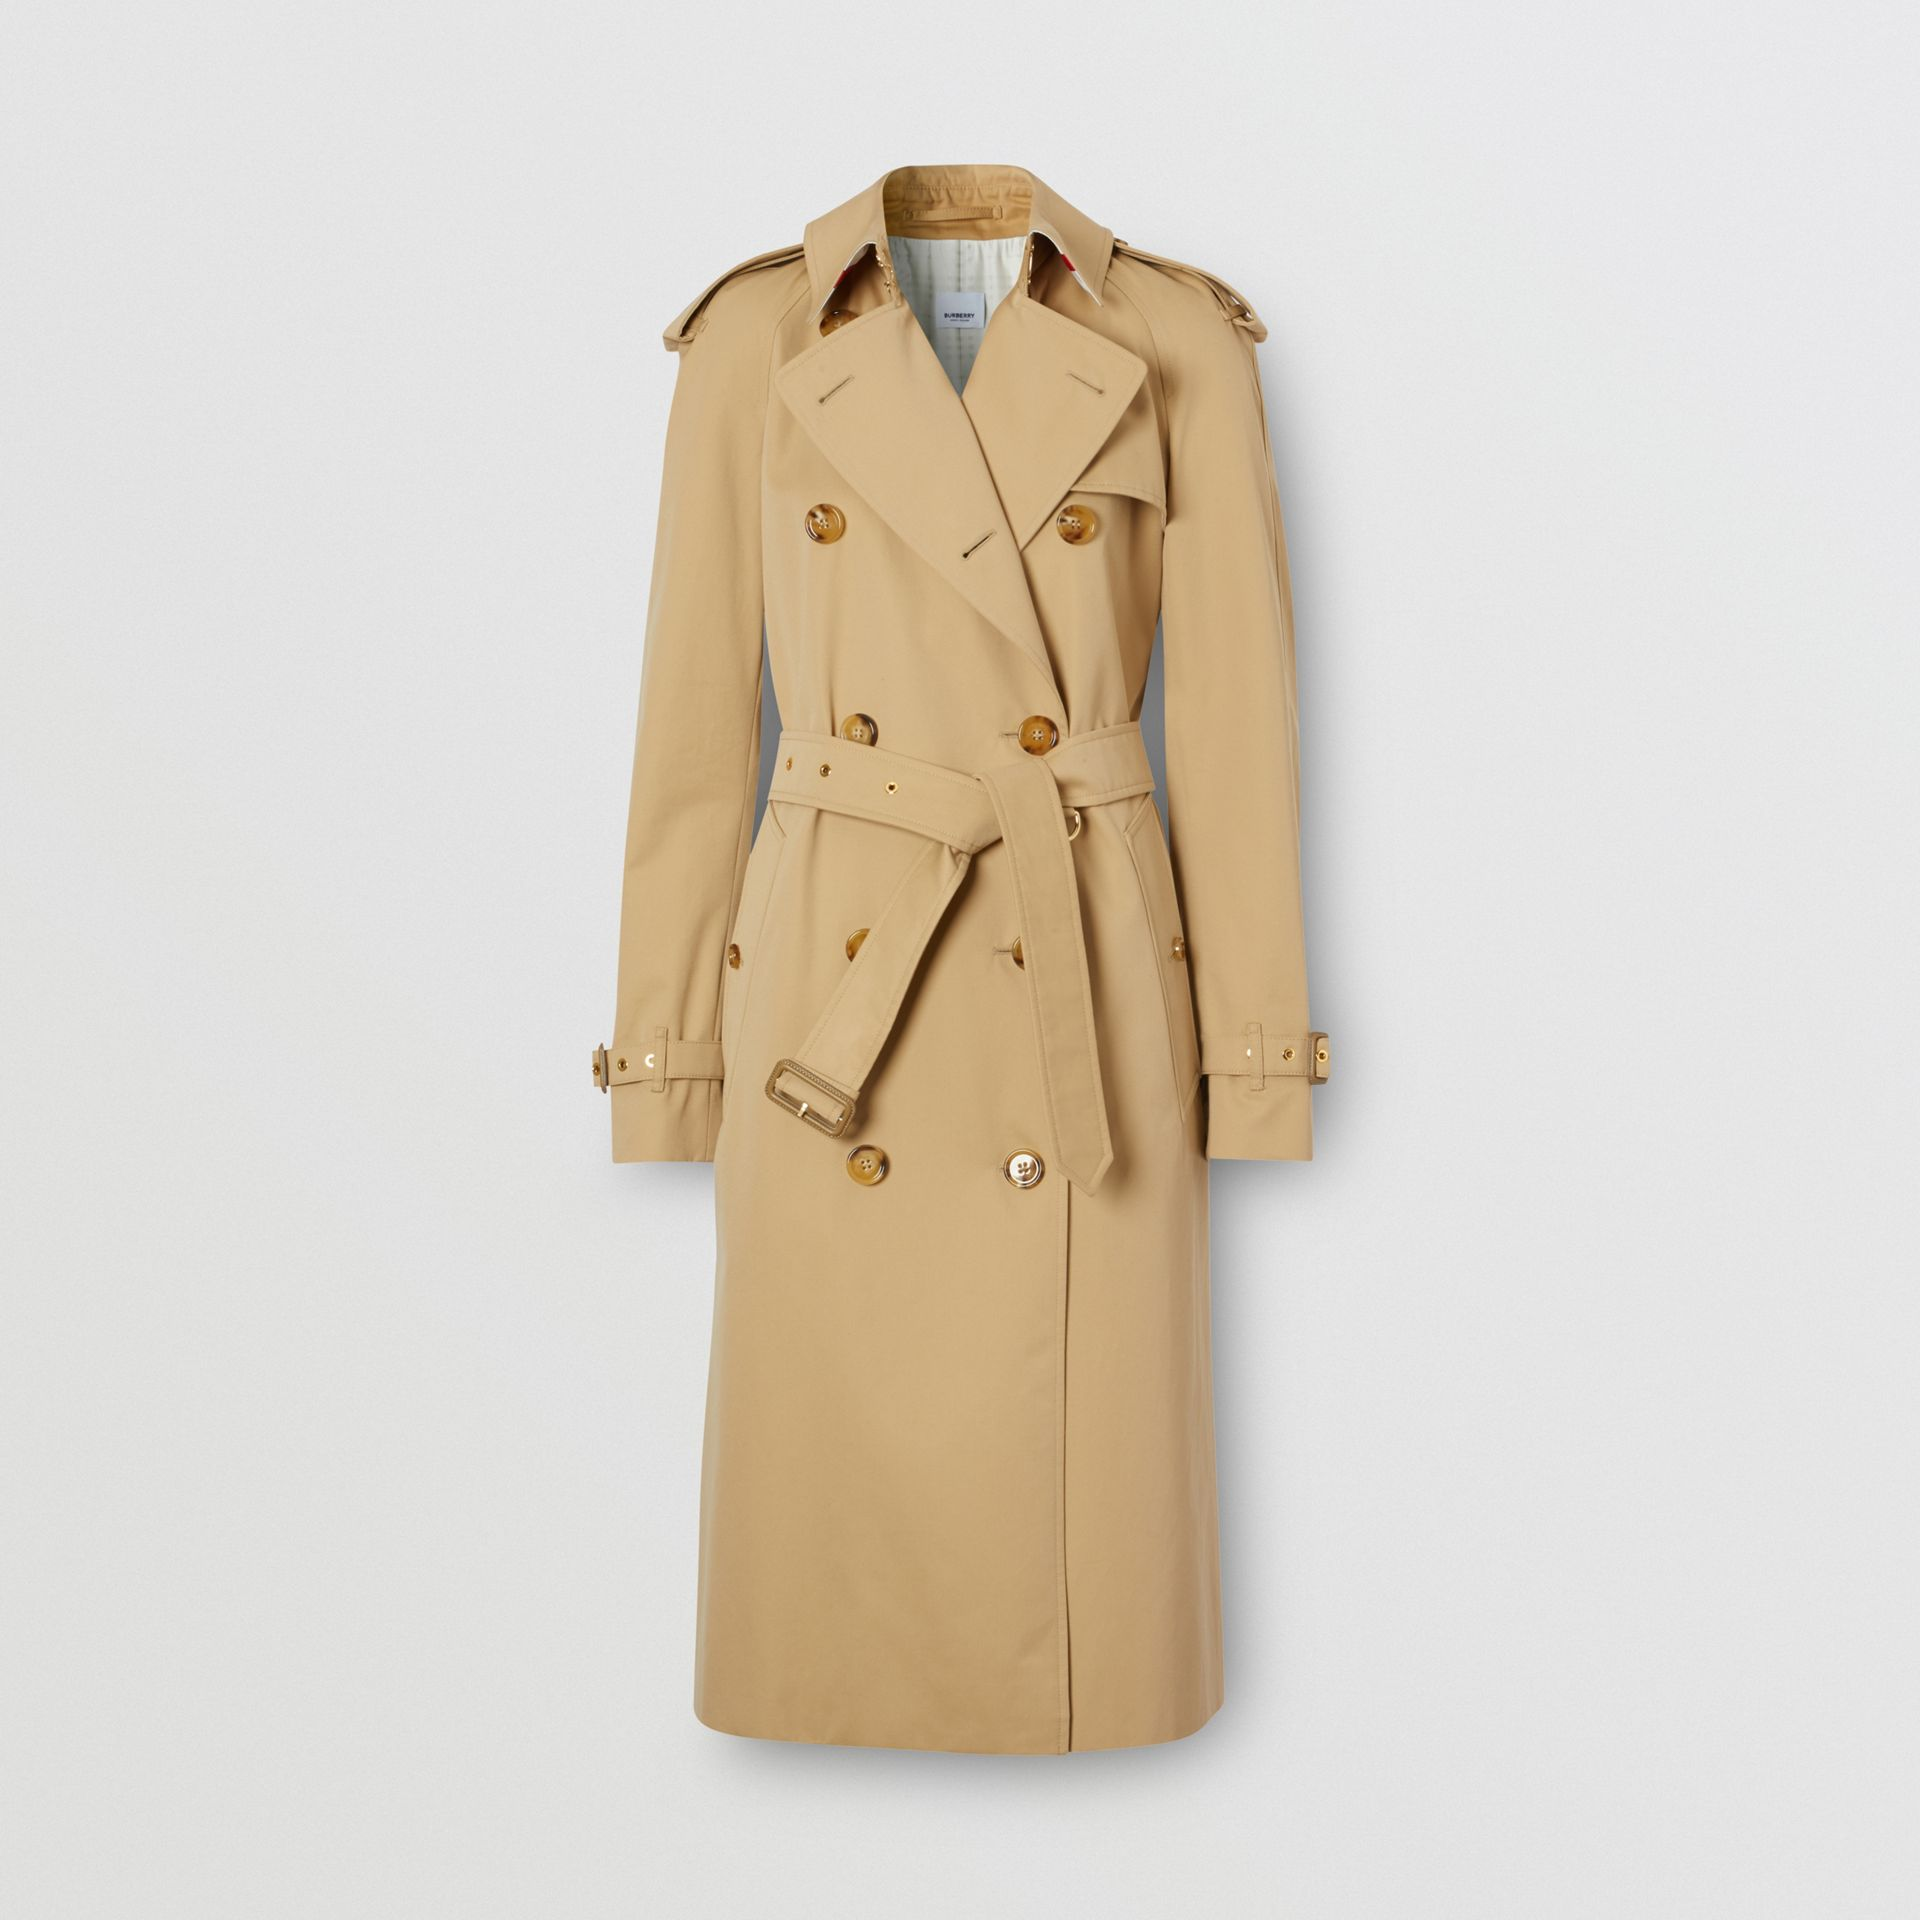 Archive Scarf Print-lined Trench Coat - Women | Burberry - gallery image 3